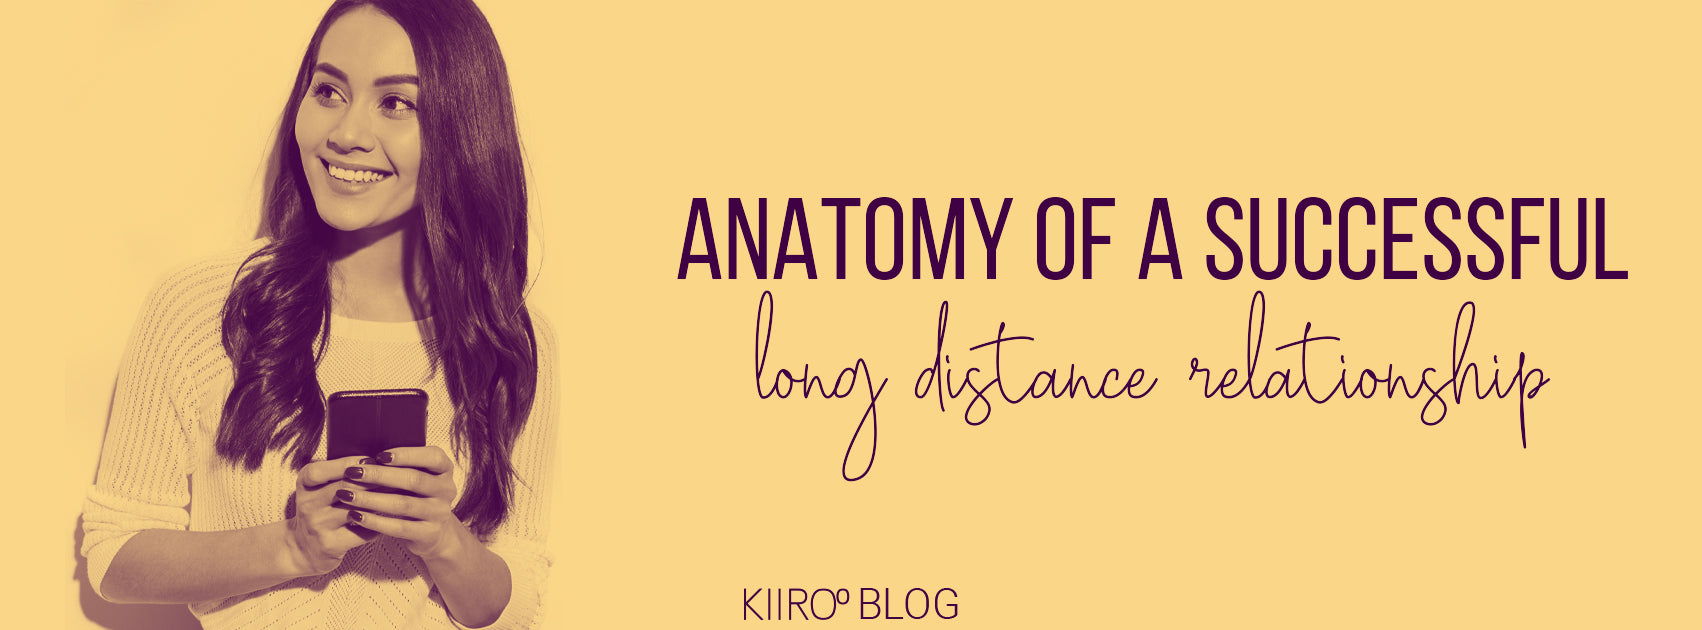 anatomy of a successful long distance relationship kiiroo